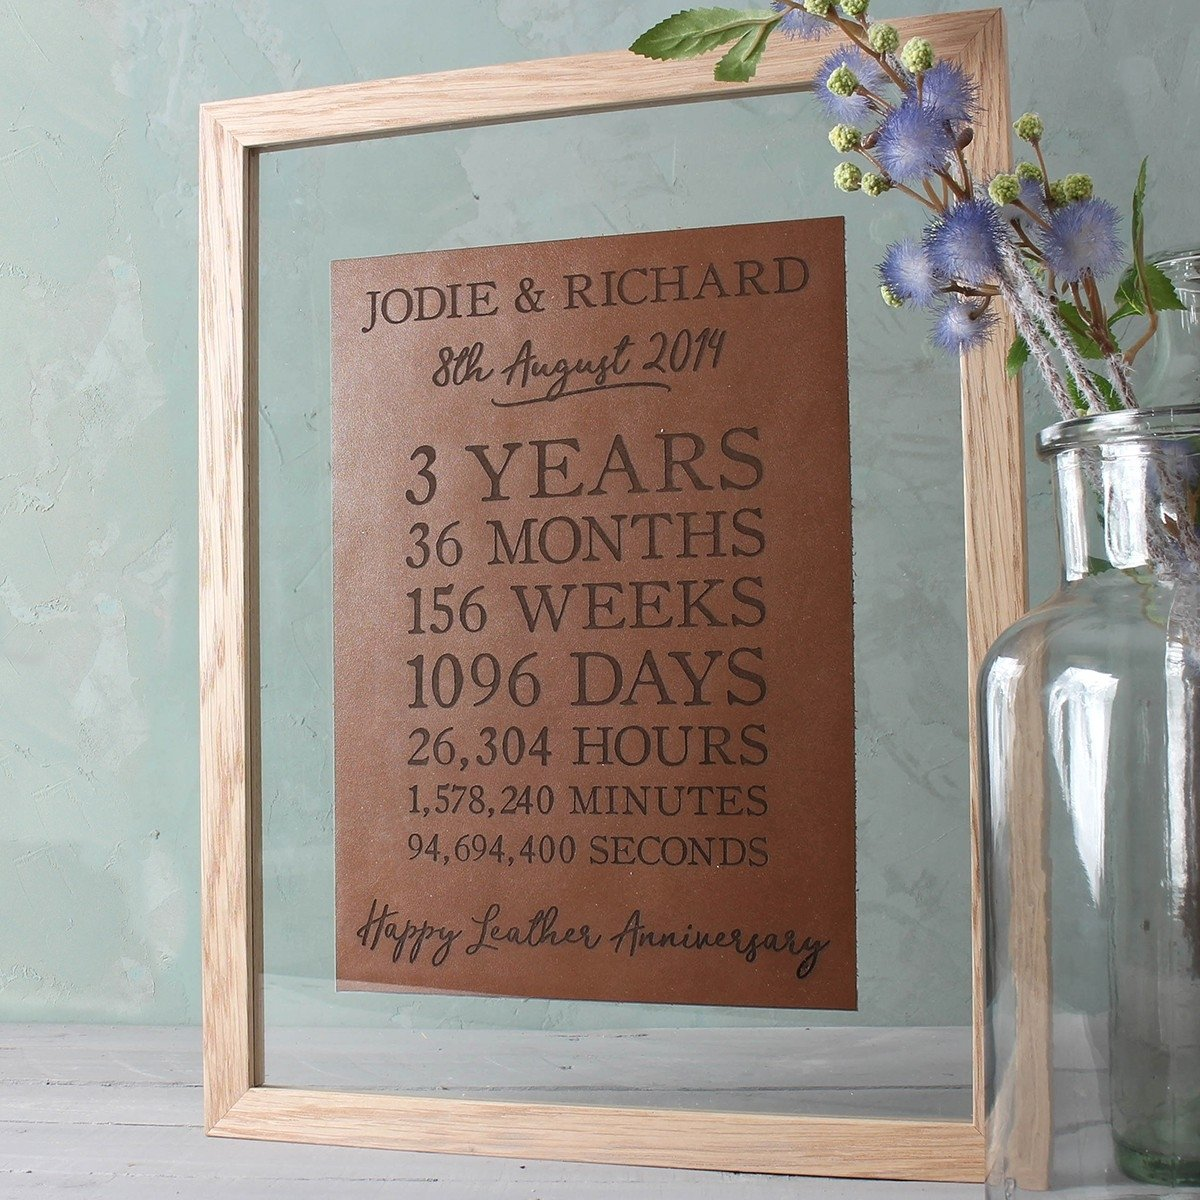 21st wedding anniversary gift ideas beautiful leather 3rd wedding